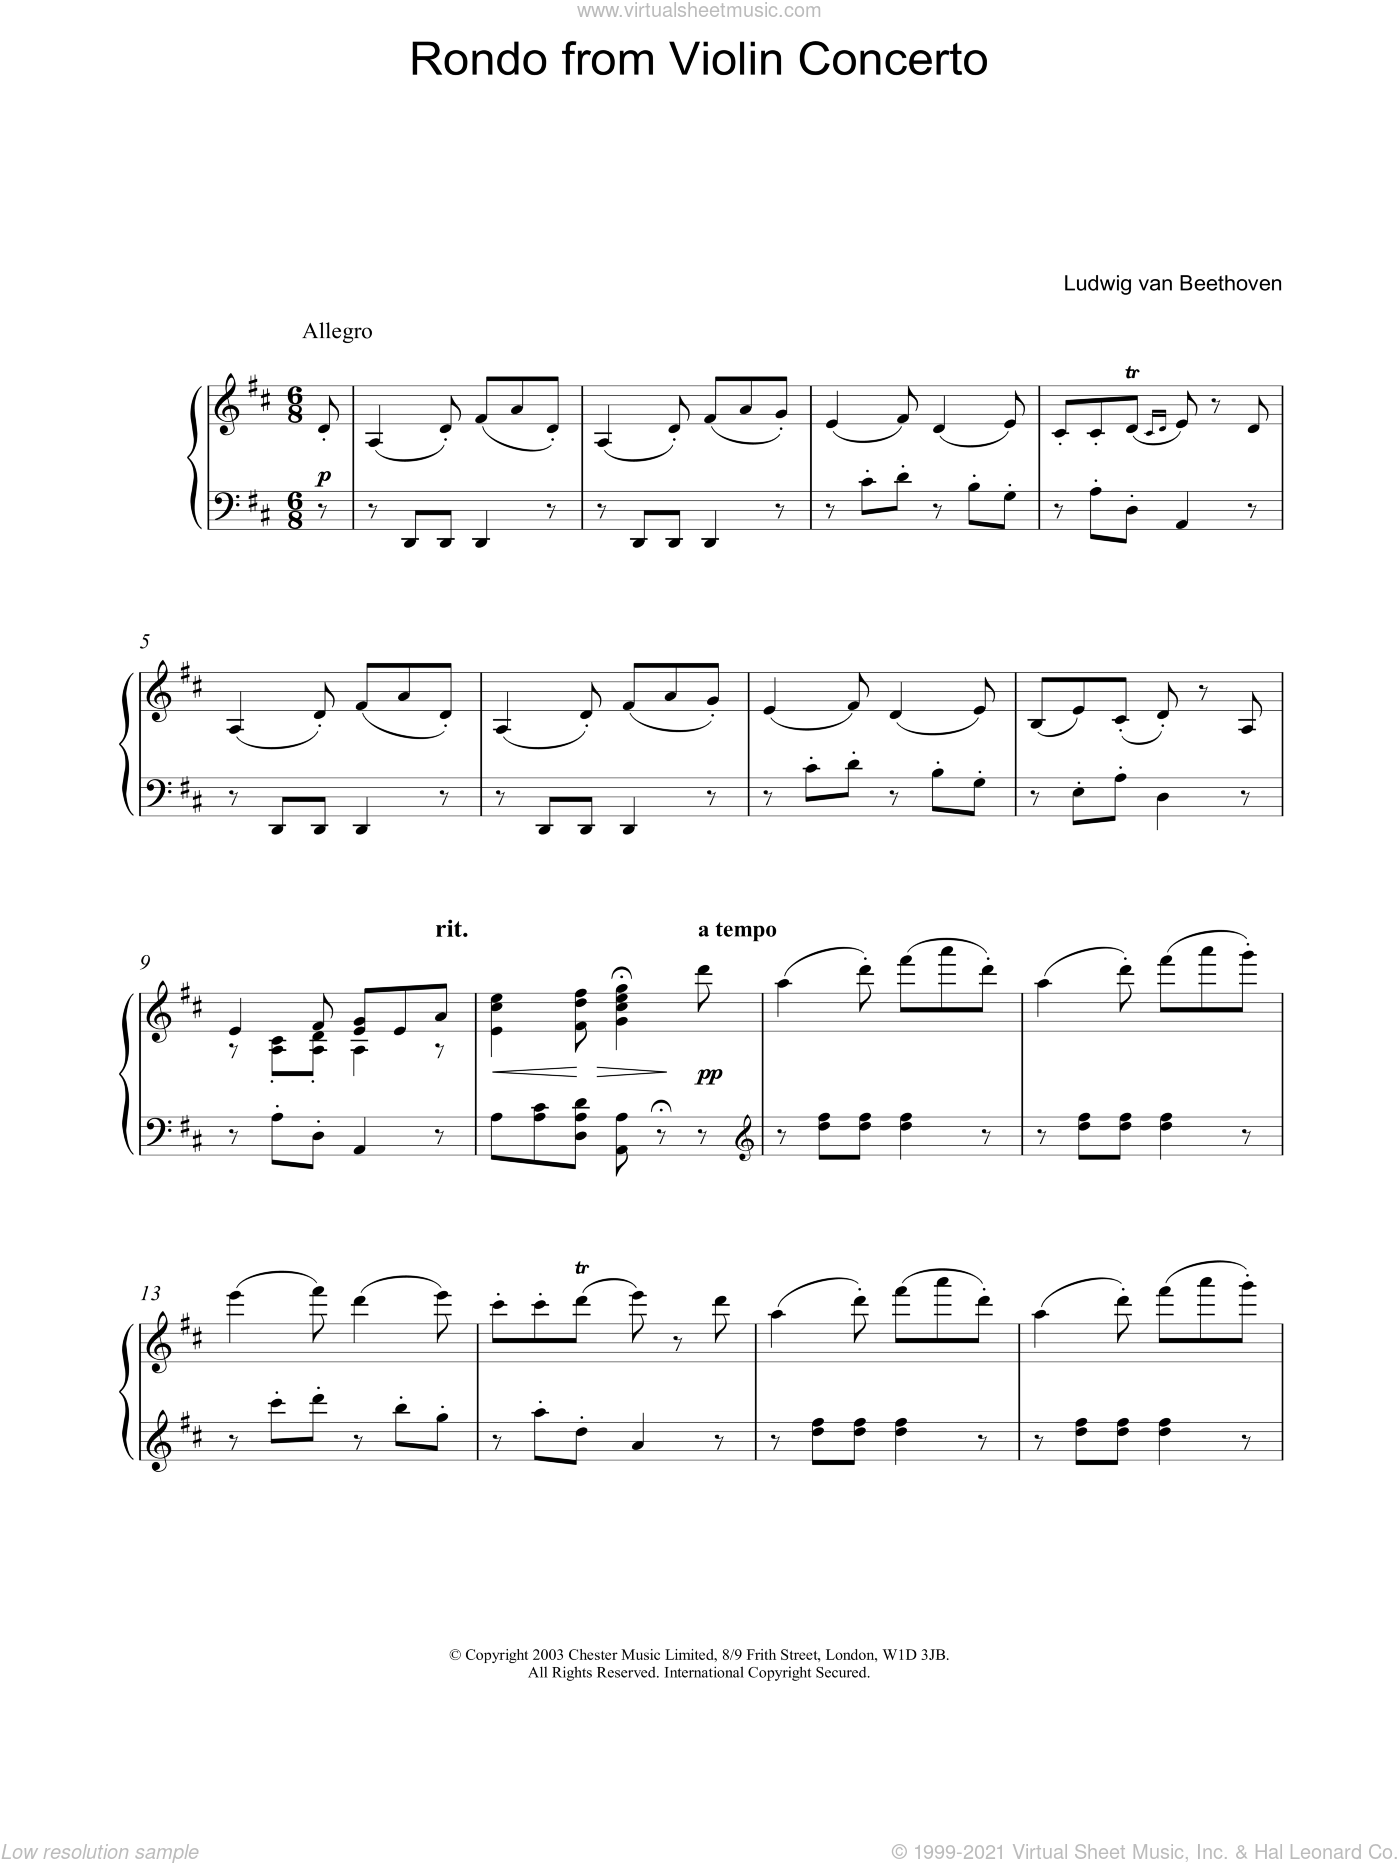 Rondo from Violin Concerto sheet music for piano solo by Ludwig van Beethoven